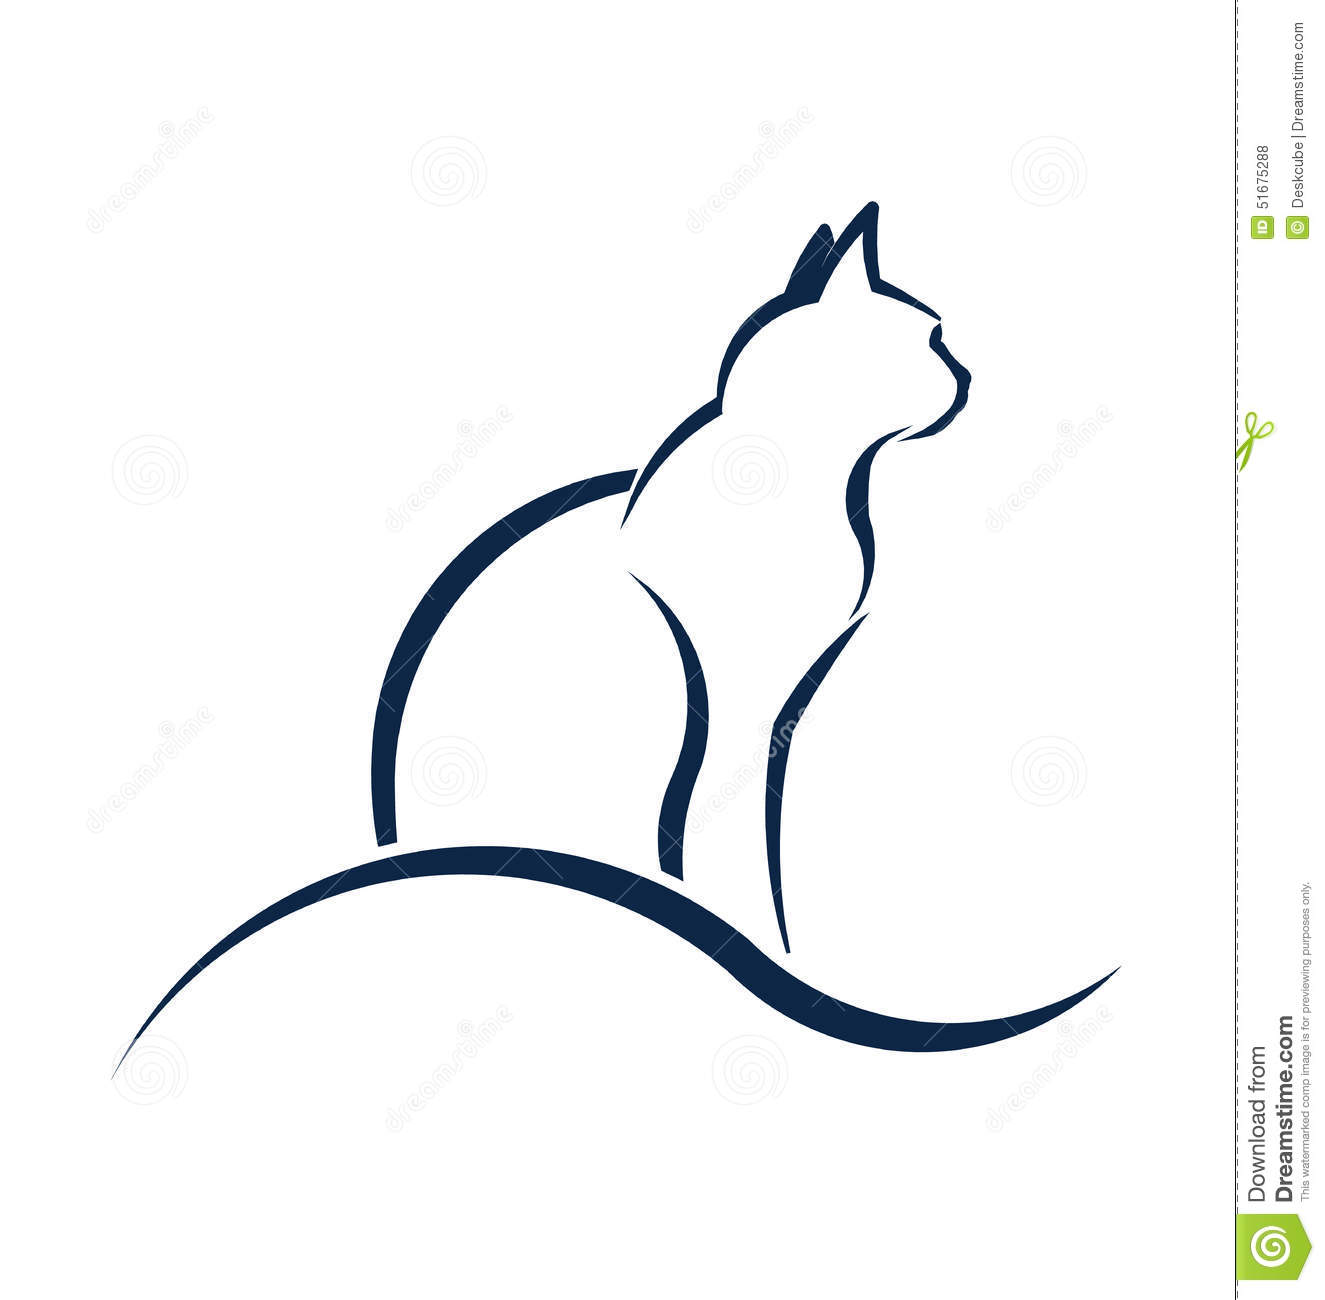 Cat Silhouette Logo With Wave. Stock Vector - Image: 51675288